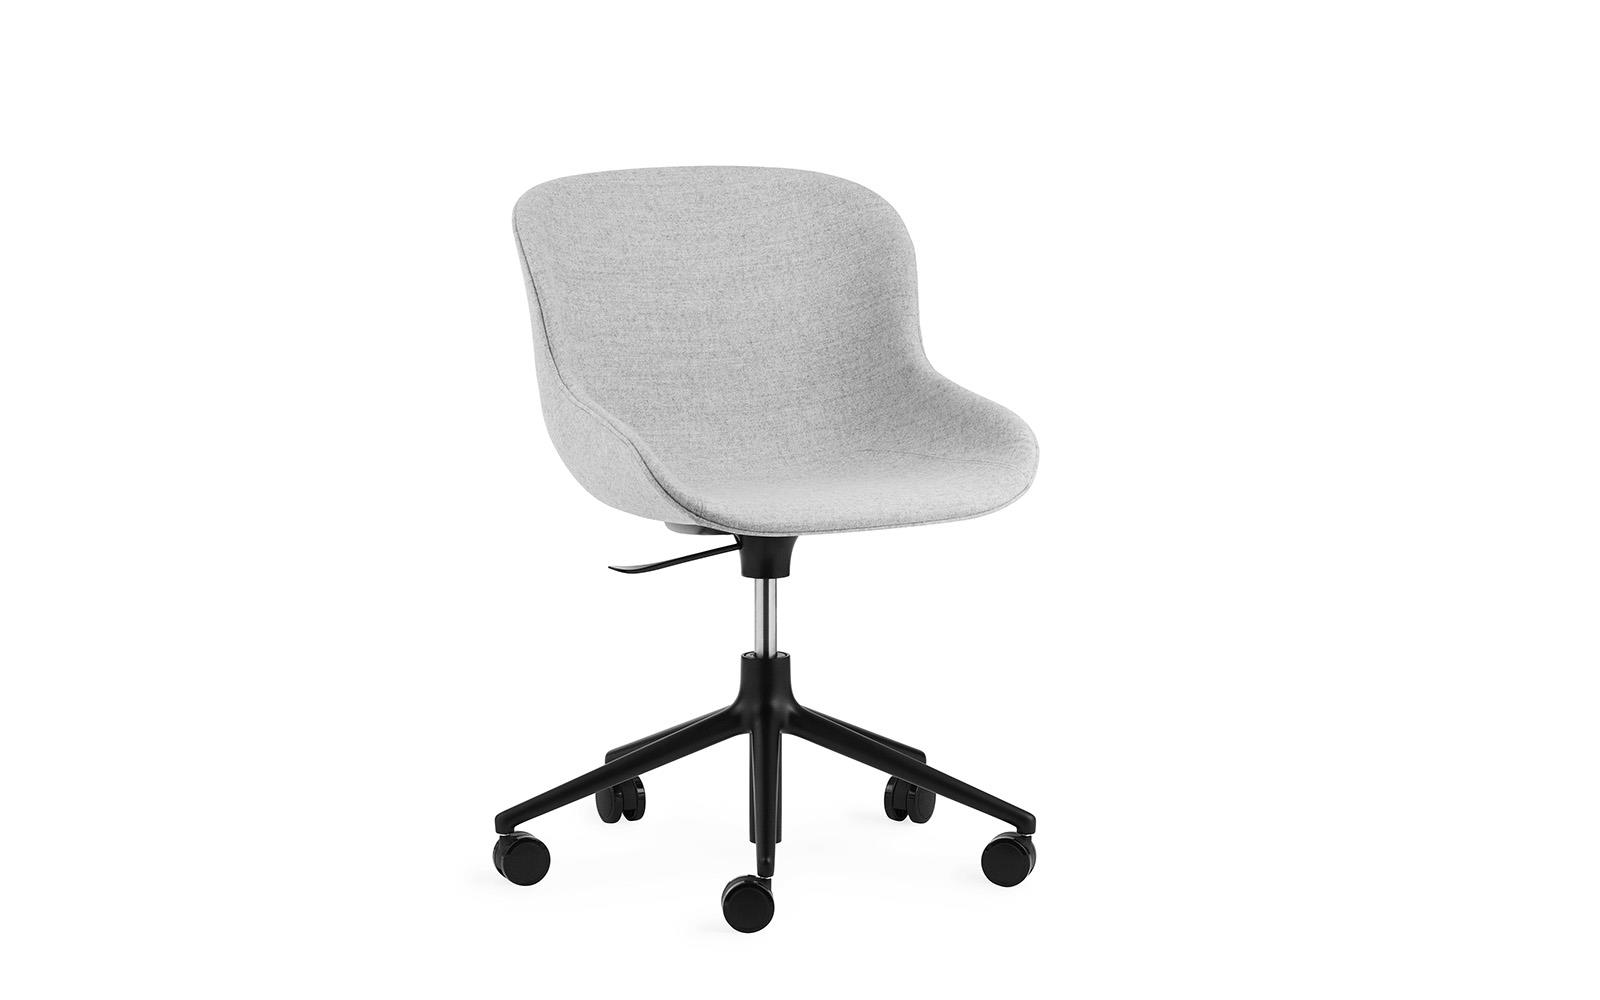 Hyg Chair Swivel 5W Gaslift Full Upholstery Black Alu1